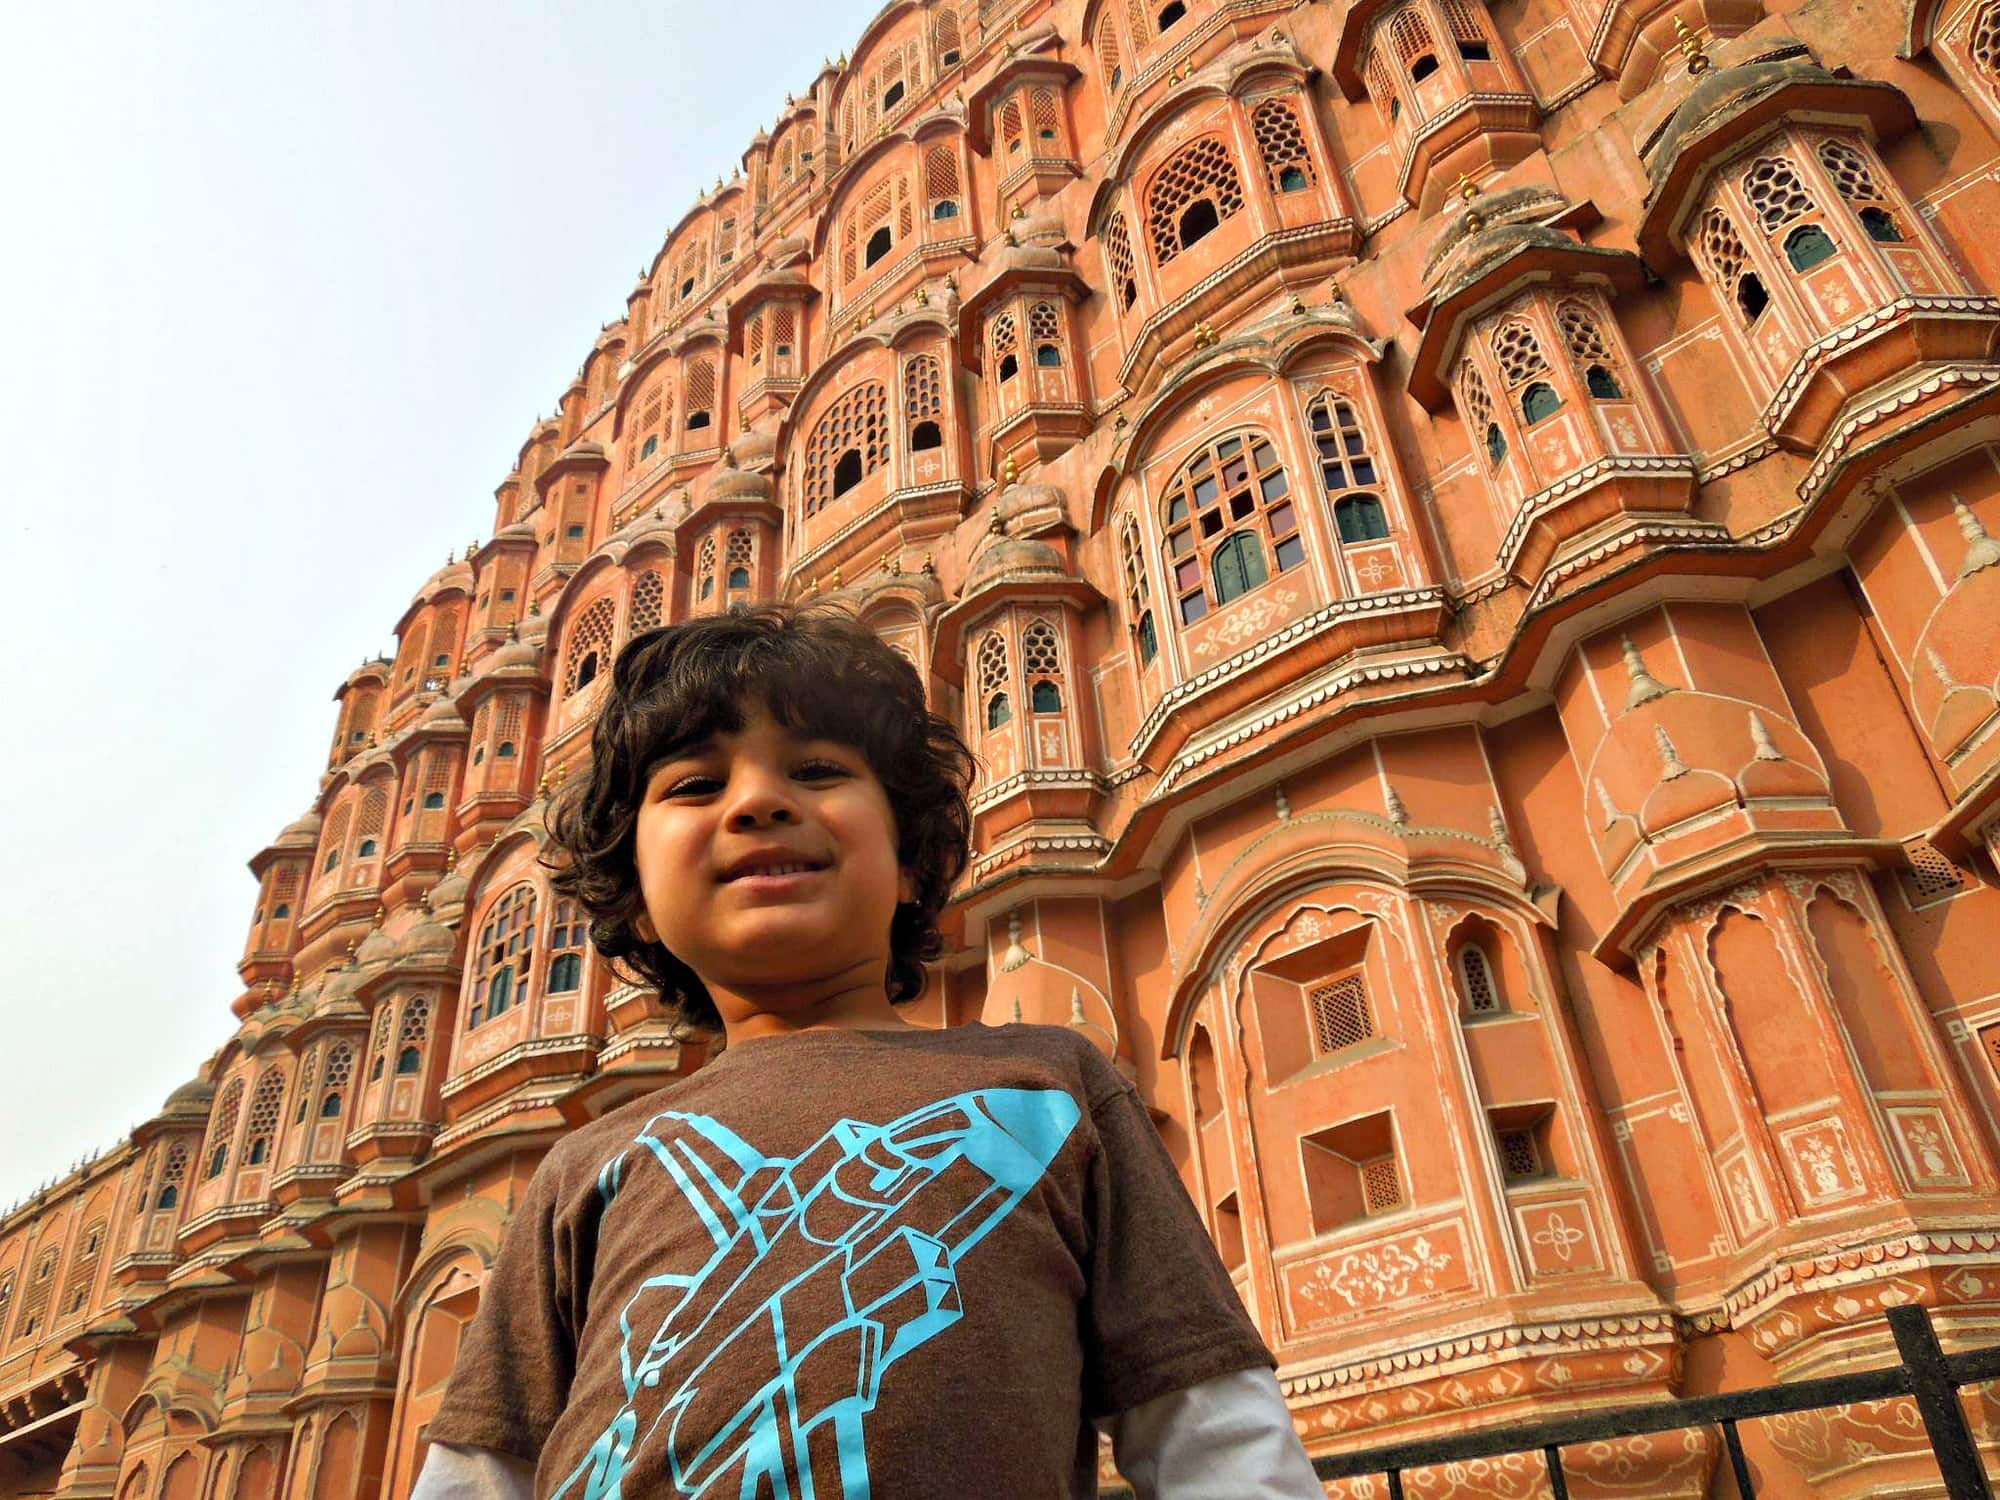 938ce7405c3 9 Crucial Tips for Traveling to India with Children - TravelMamas.com